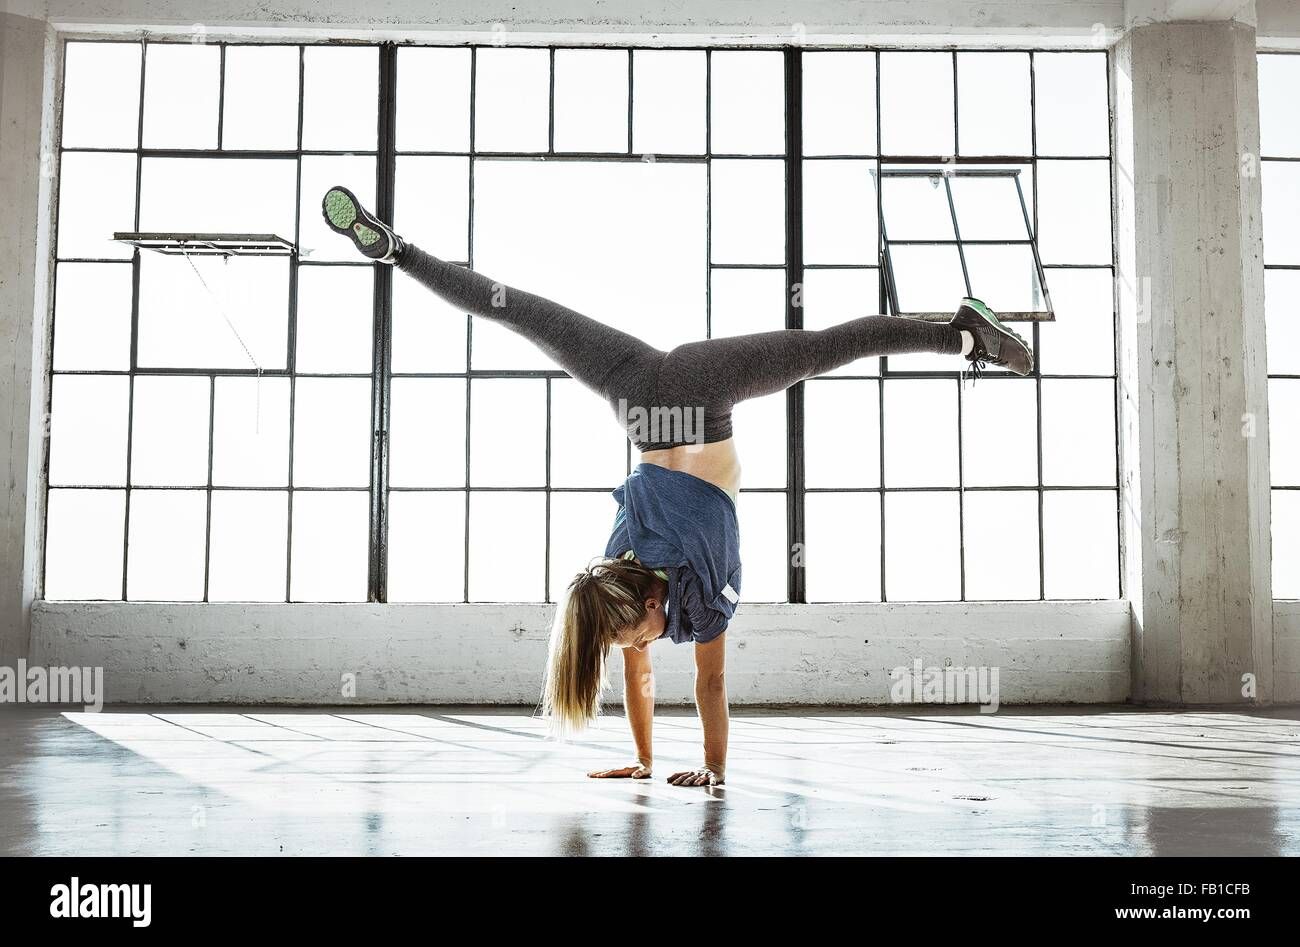 Vue arrière du young woman in gym doing handstand, ouvrir les jambes Photo Stock